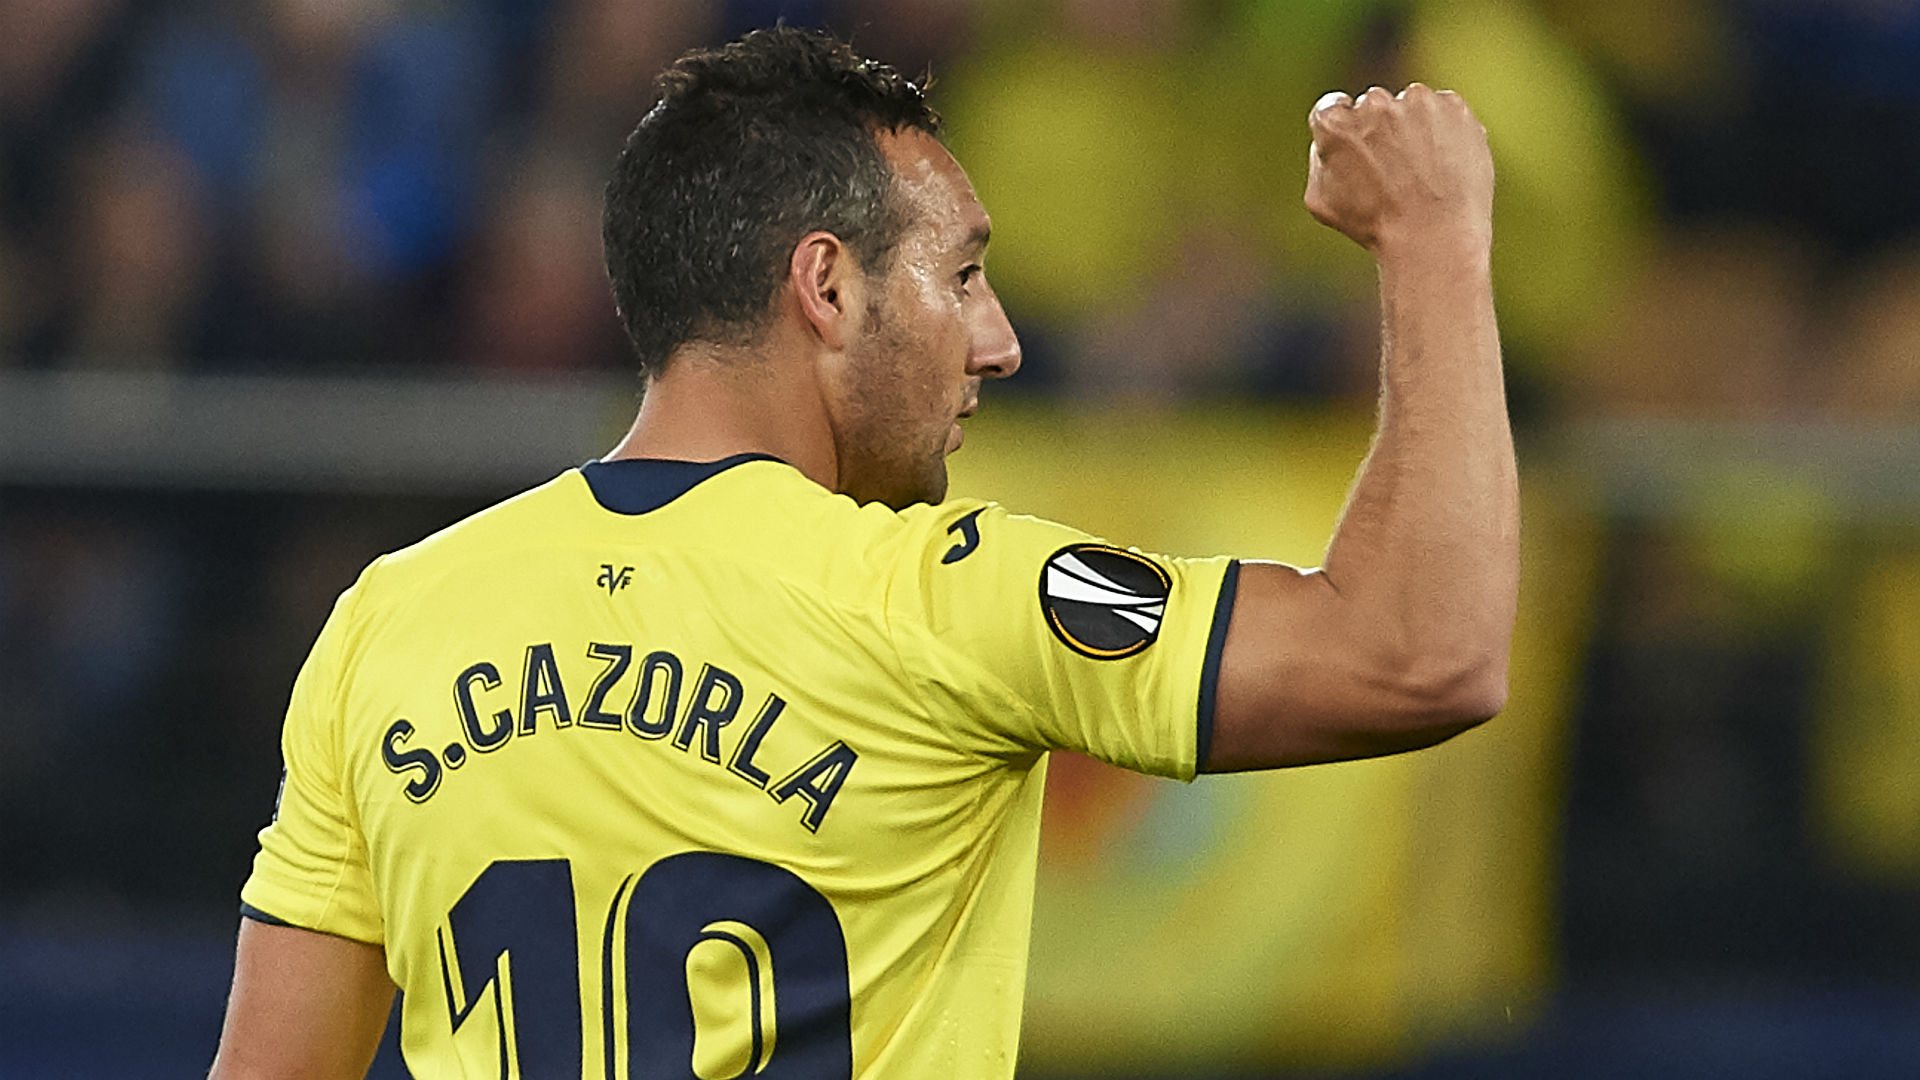 Cazorla returns to Spain squad for first time since 2015